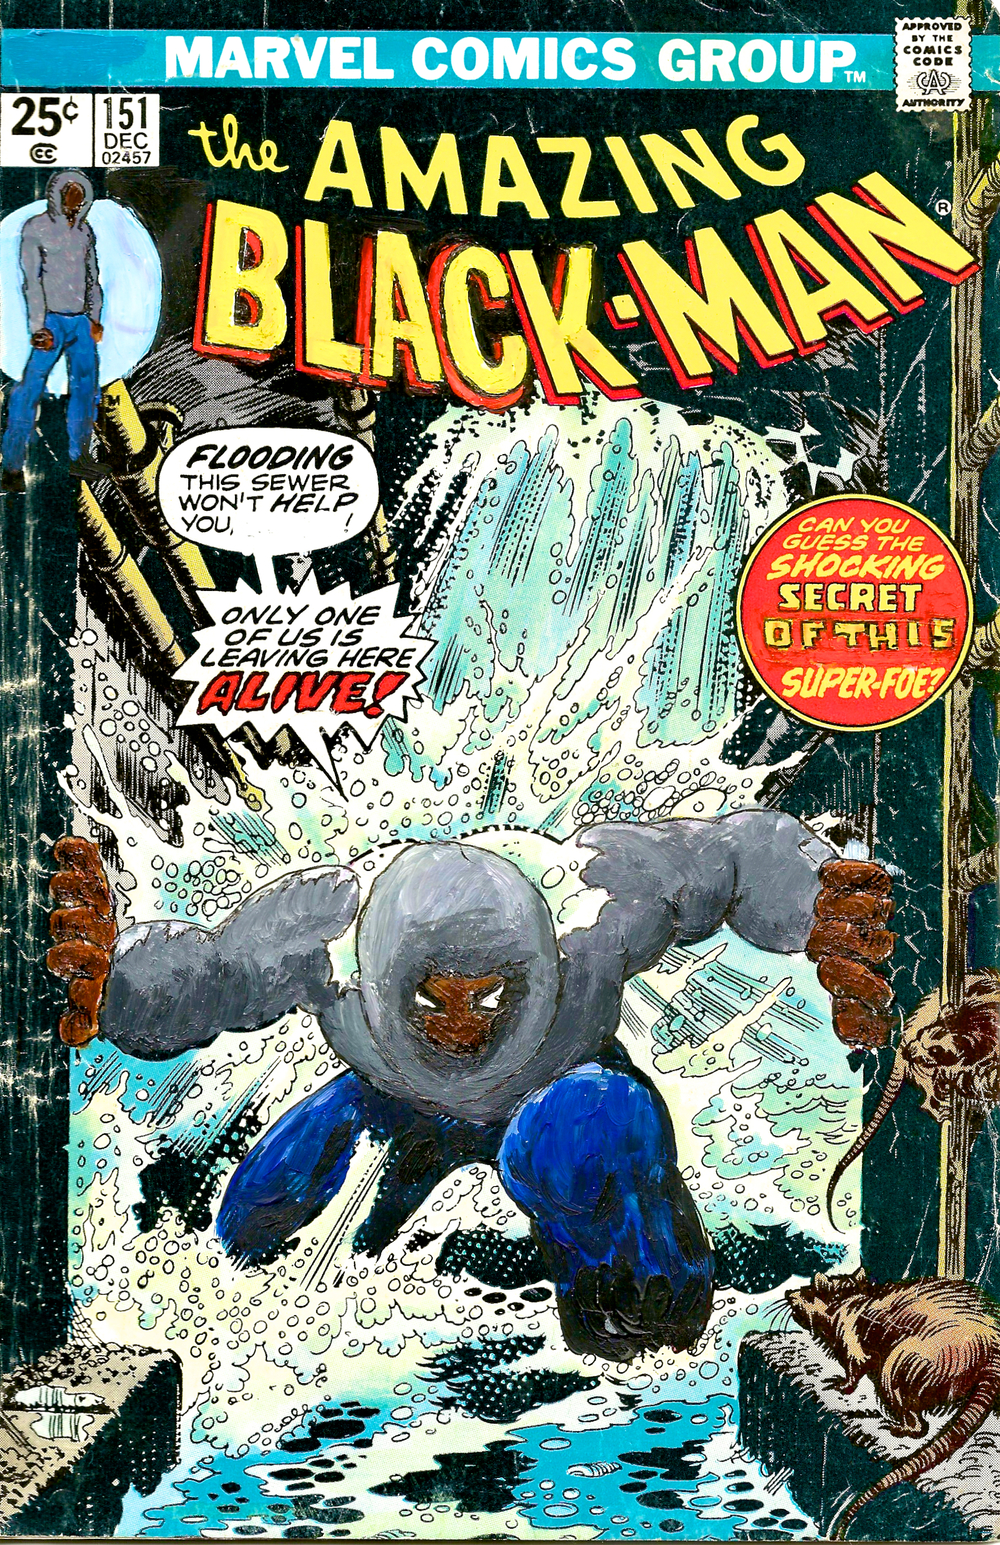 The Amazing Black-Man #151